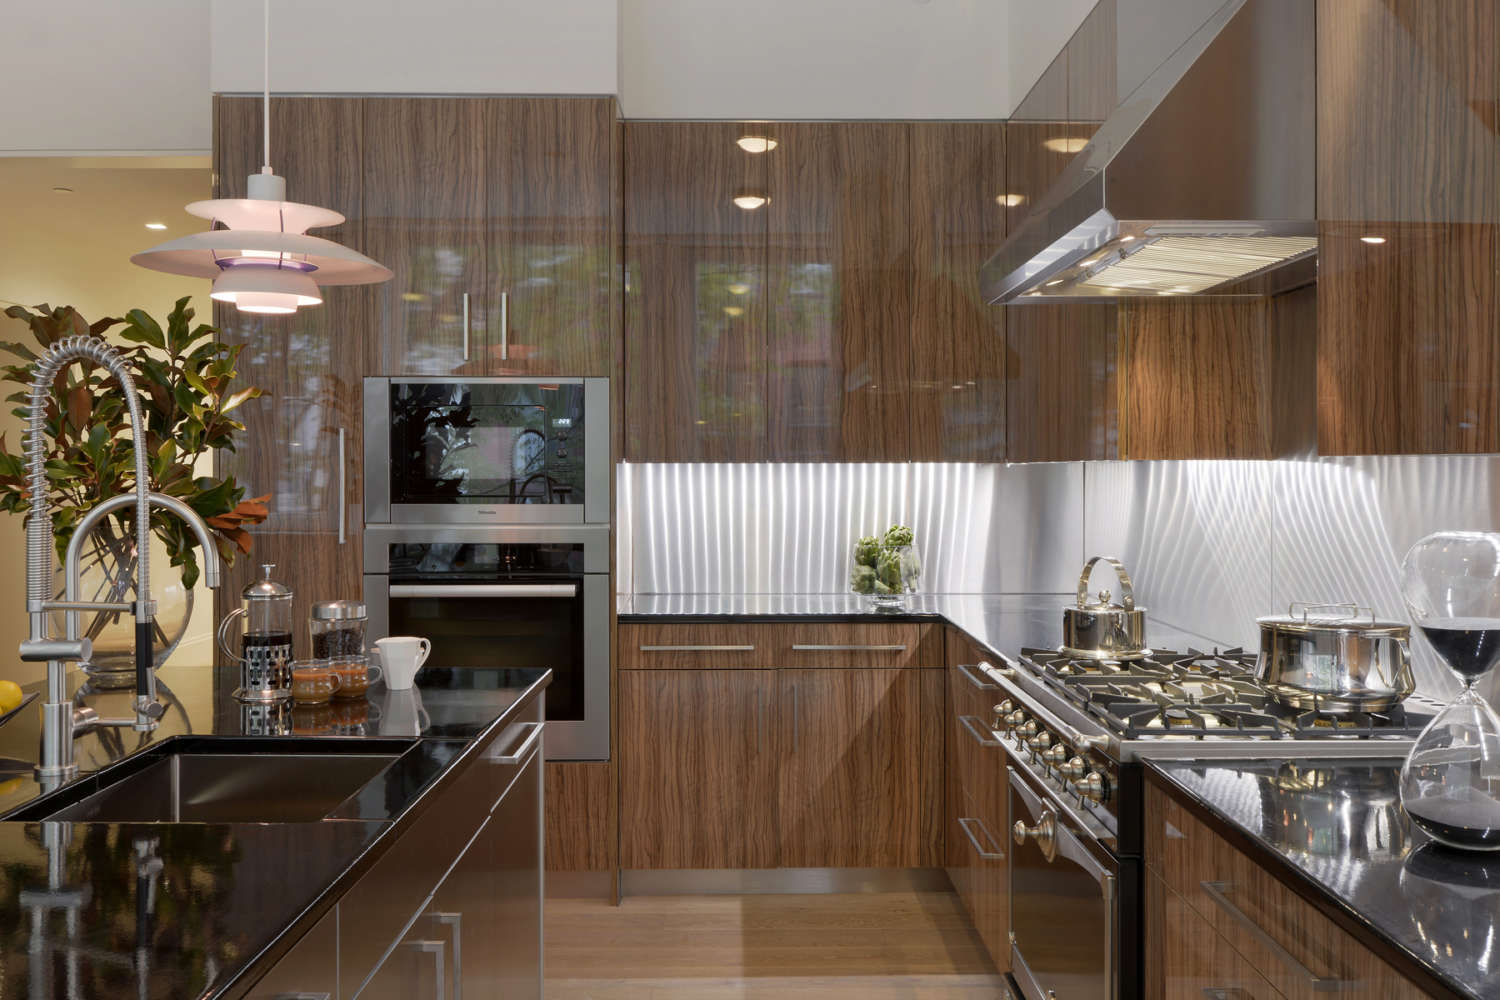 NYC L-shaped loft kitchen features a mix of high gloss olive wood and brushed alumasteel custom cabinetry by Artcraft in flat panel, frameless style. The design incorporates dramatic lighting, black granite countertops and light oak flooring. Design by Randy O'Kane, CKD, of Bilotta Kitchens.